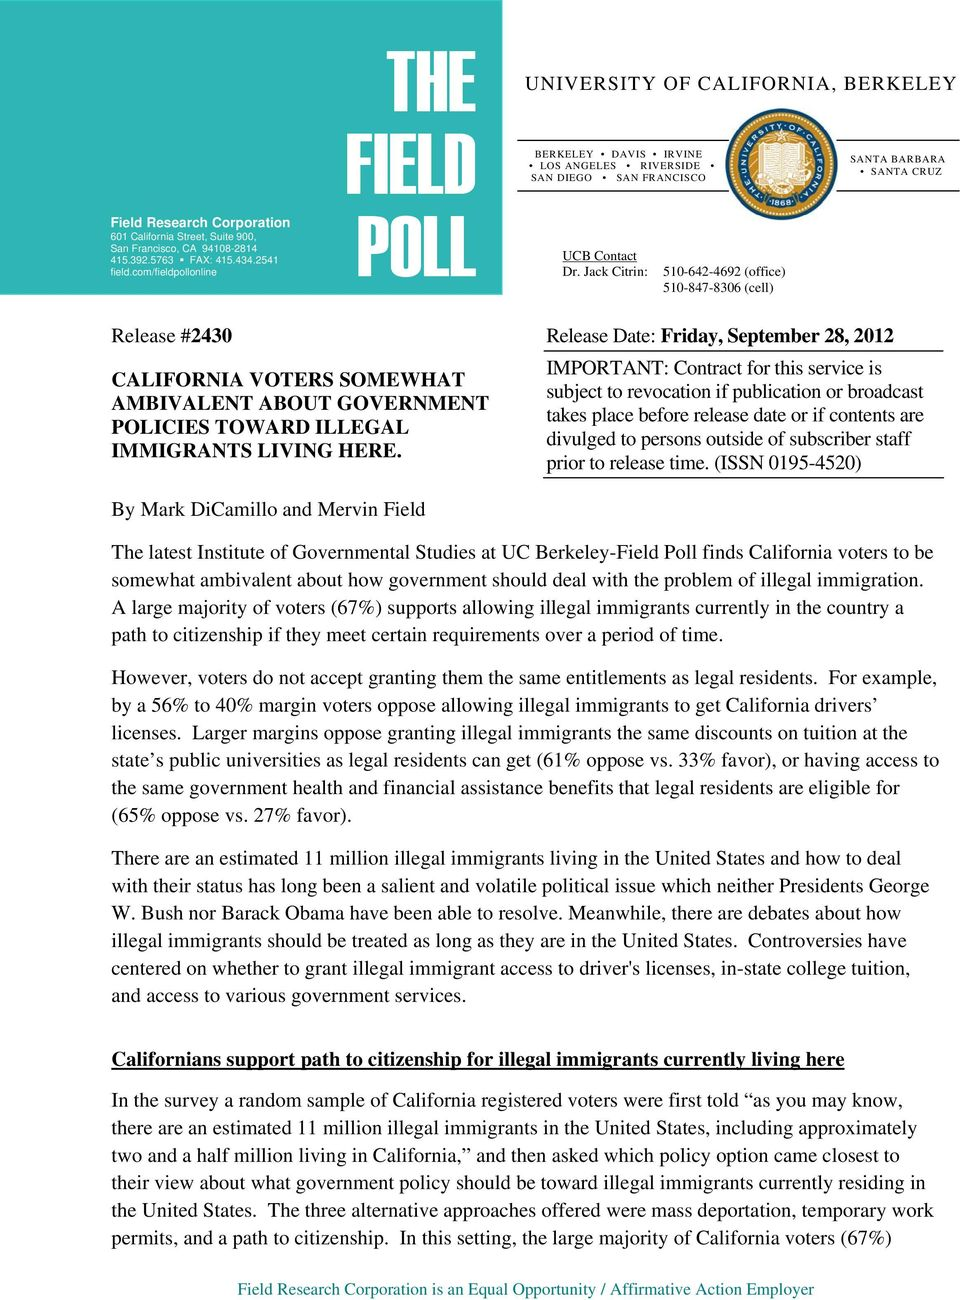 Jack Citrin: 510-642-4692 (office) 510-847-8306 (cell) SANTA BARBARA SANTA CRUZ Release #2430 Release Date: Friday, September 28, 2012 CALIFORNIA VOTERS SOMEWHAT AMBIVALENT ABOUT GOVERNMENT POLICIES